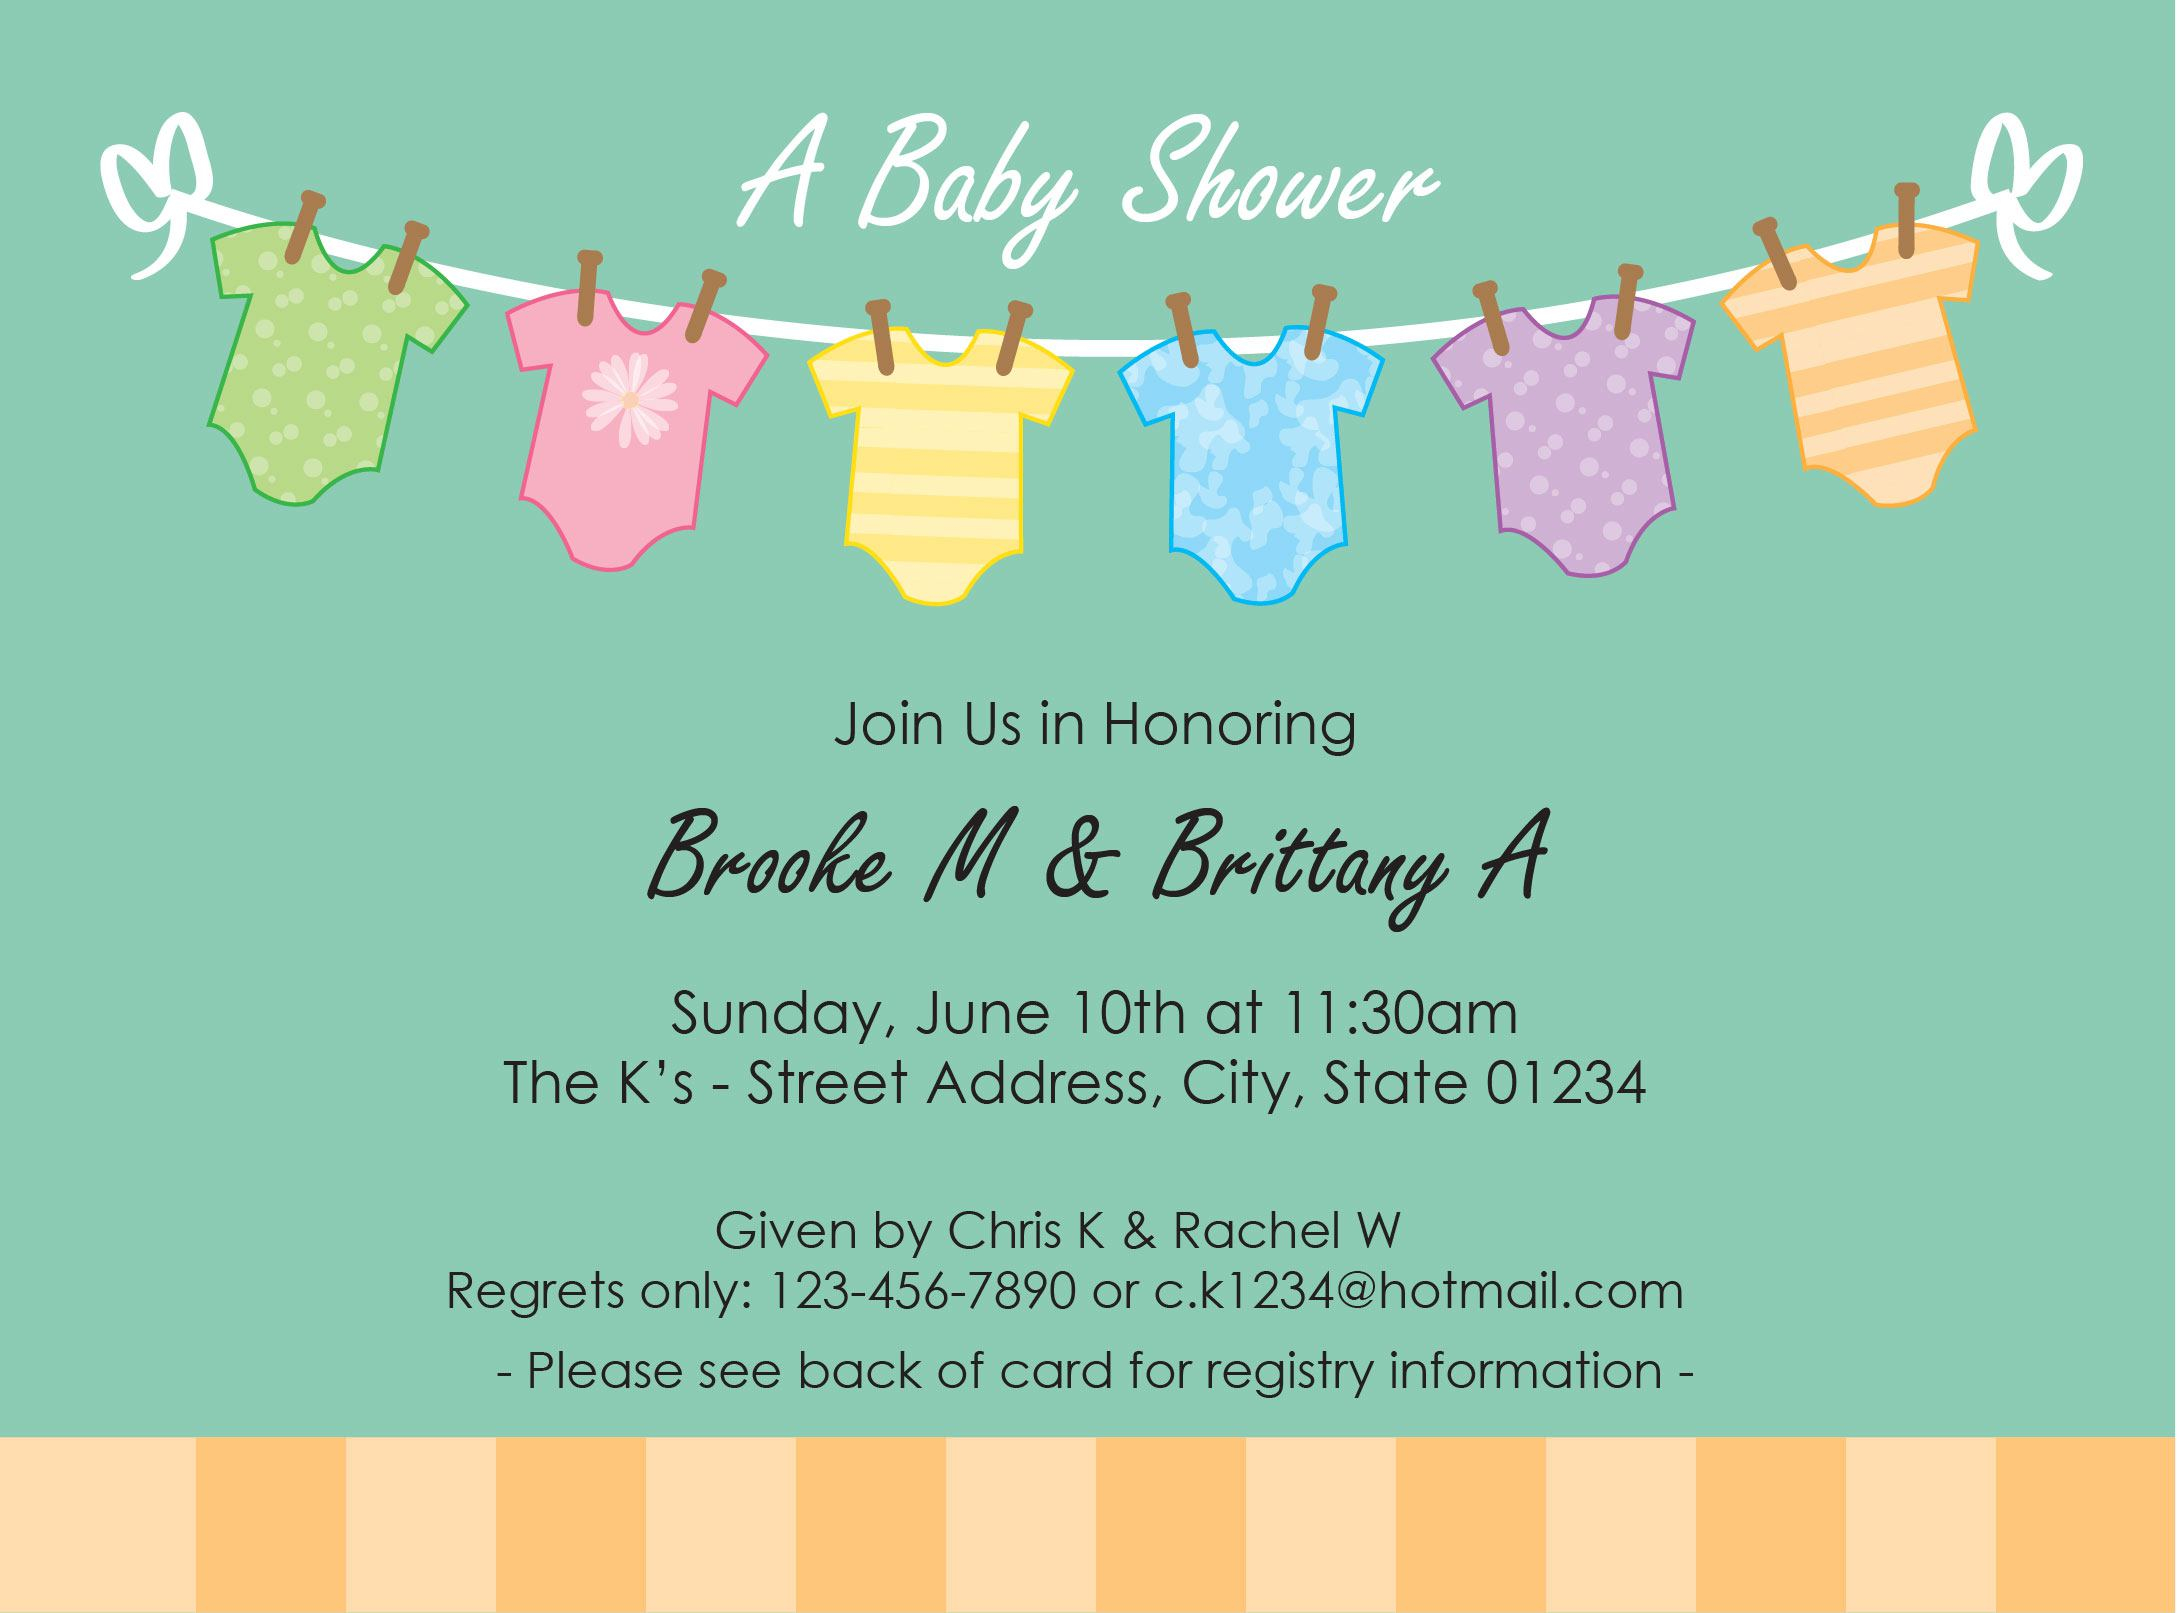 Amazing Invitation For Baby Shower: Beautiful Free Baby Shower Invitation pertaining to Free Baby Shower Invitations